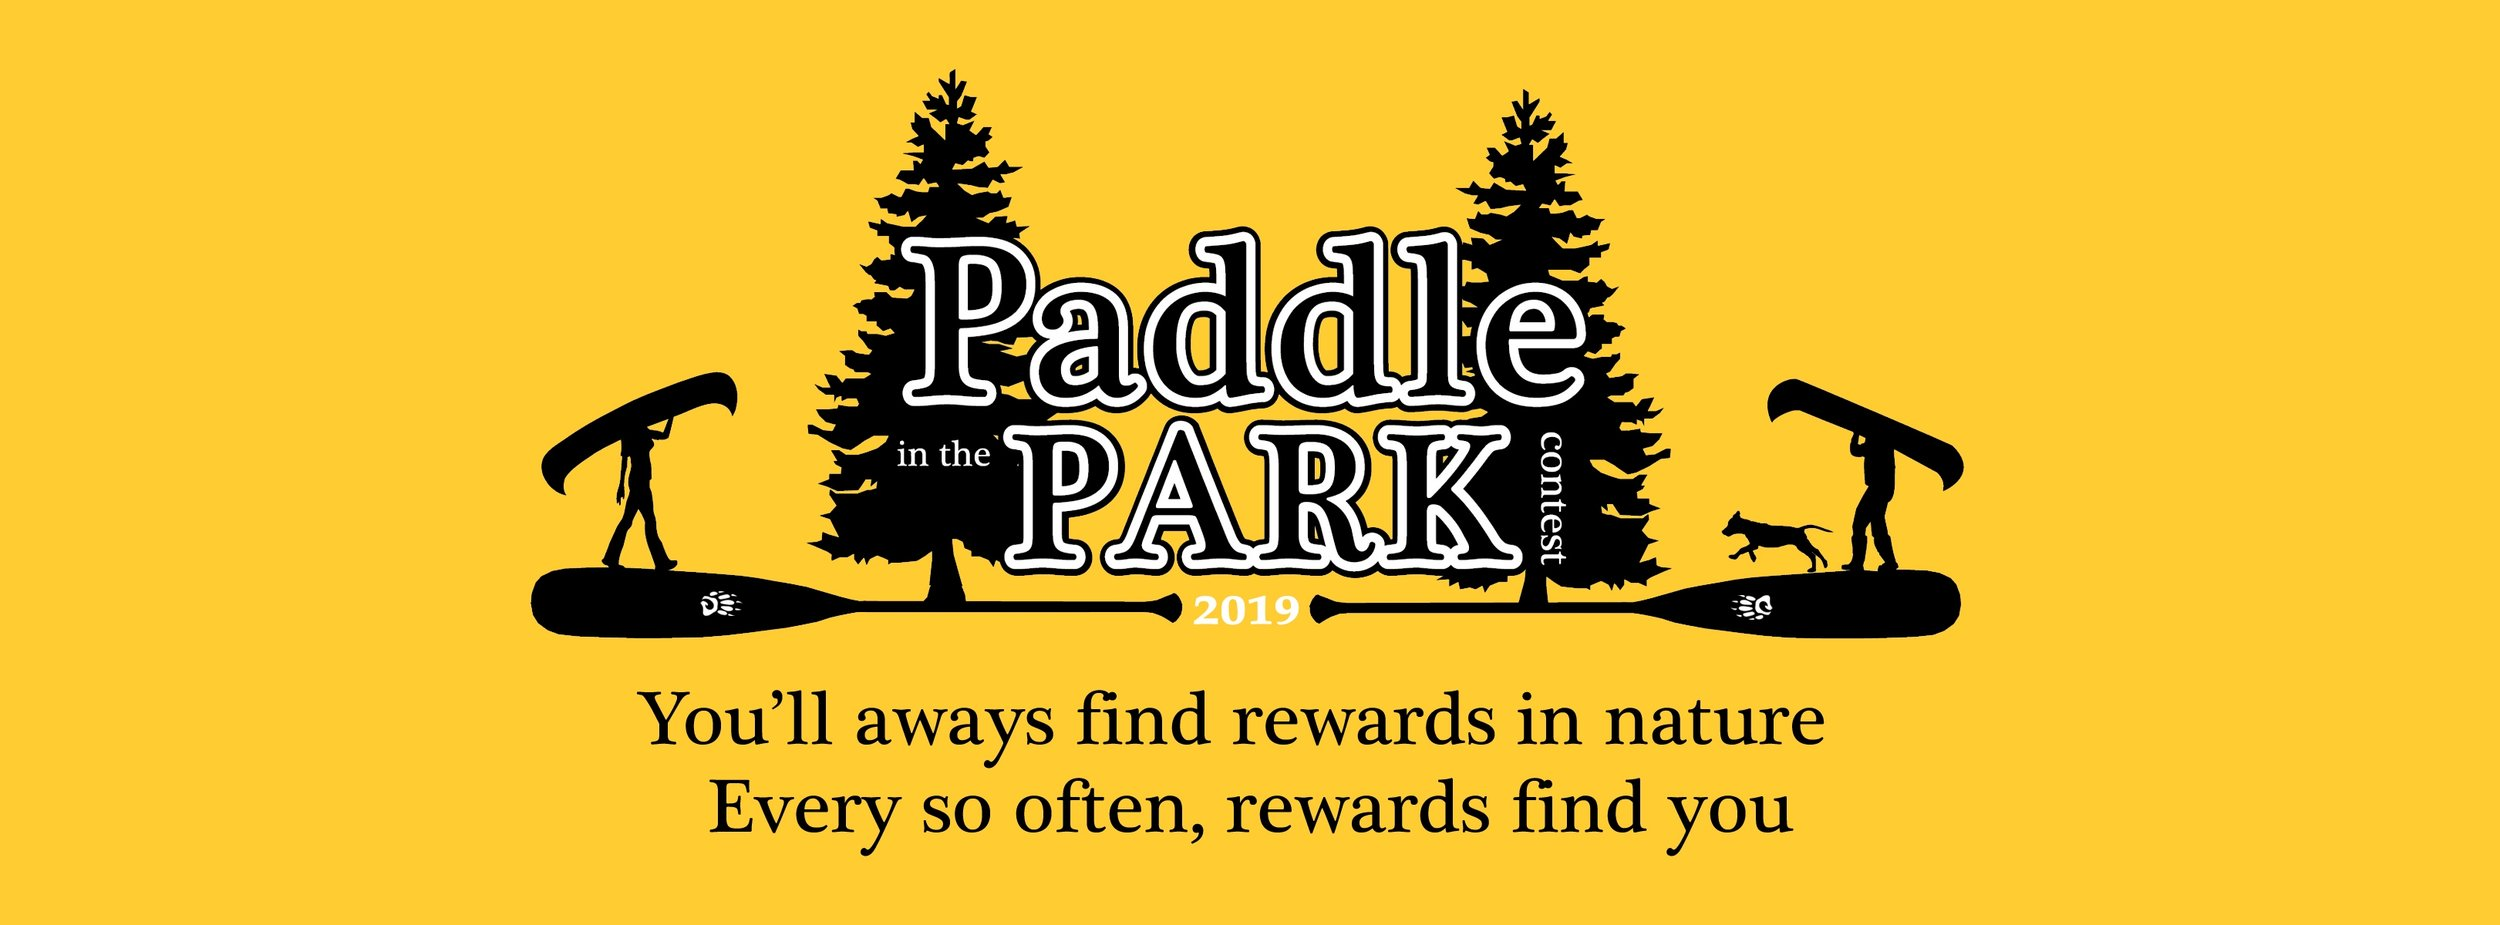 PaddleInTheParkContest2019.jpg